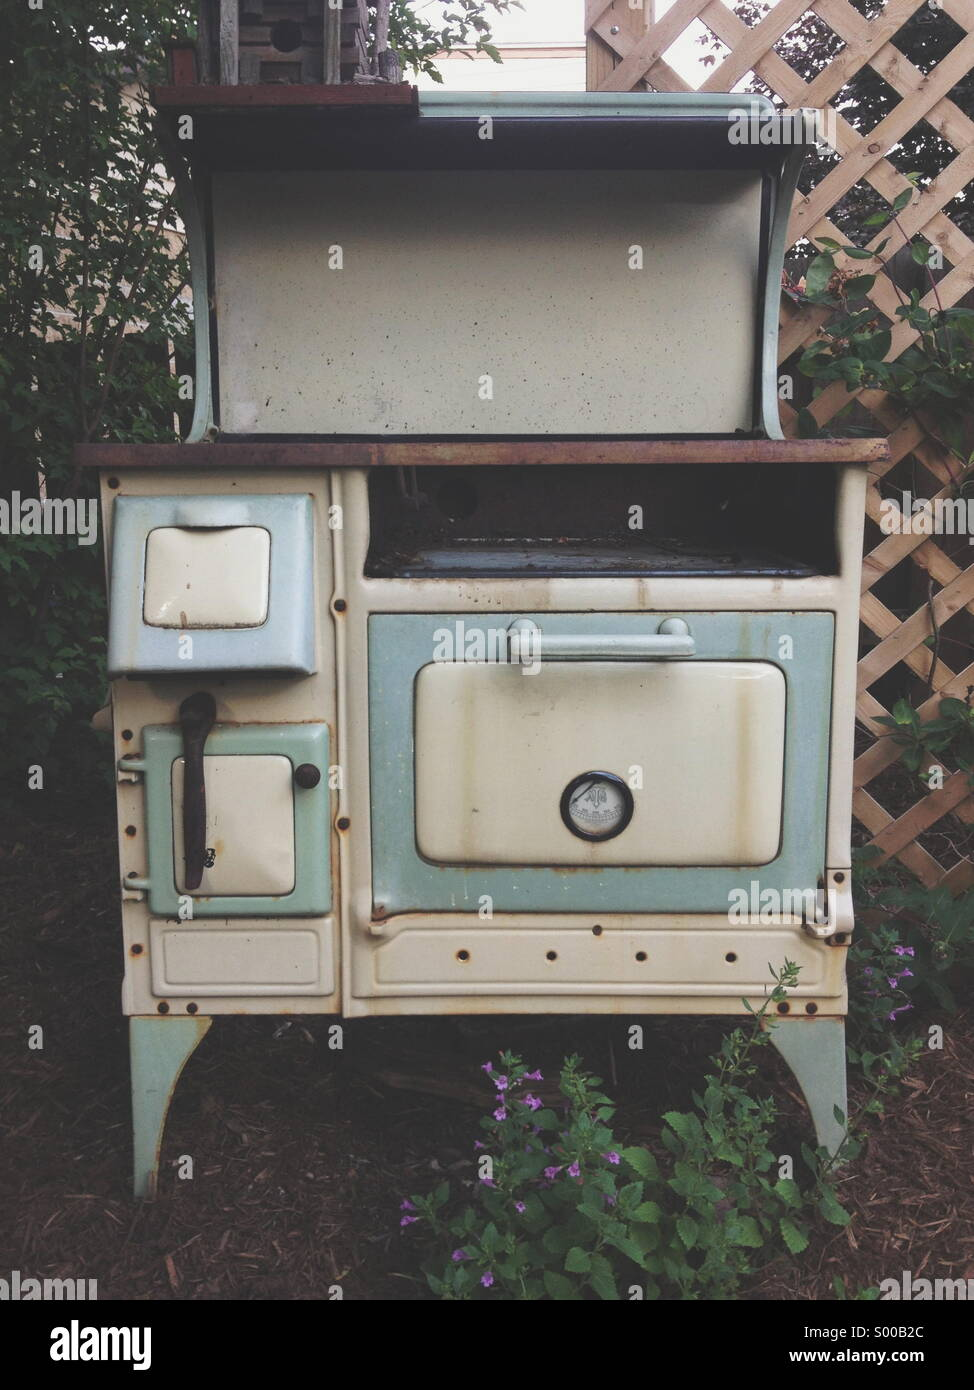 antique stove stockfotos antique stove bilder alamy. Black Bedroom Furniture Sets. Home Design Ideas